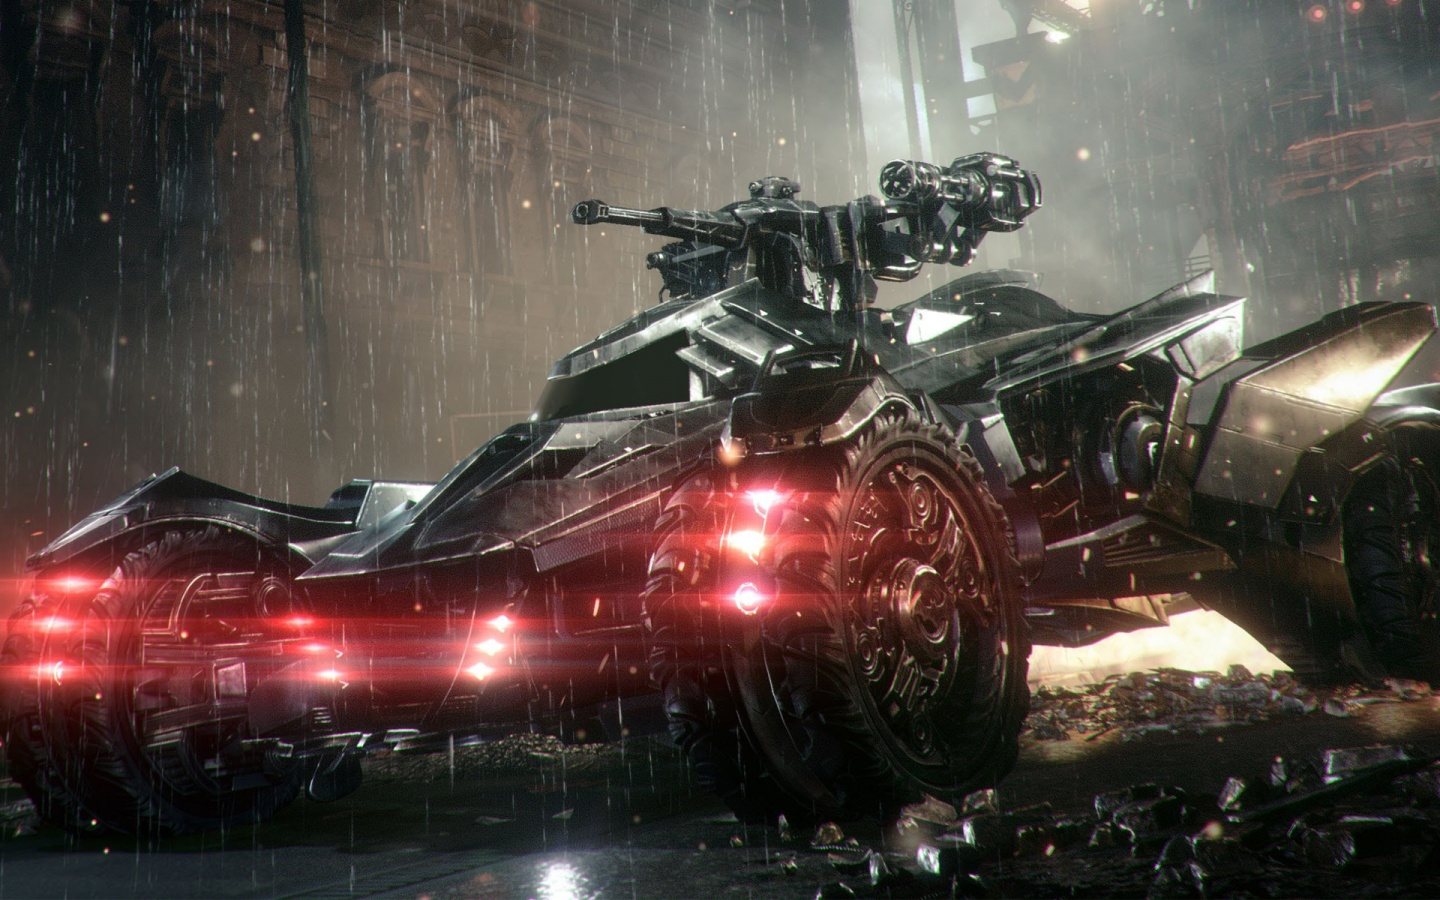 Batmobile in Arkham Knight Wallpapers HD Wallpapers 1440x900